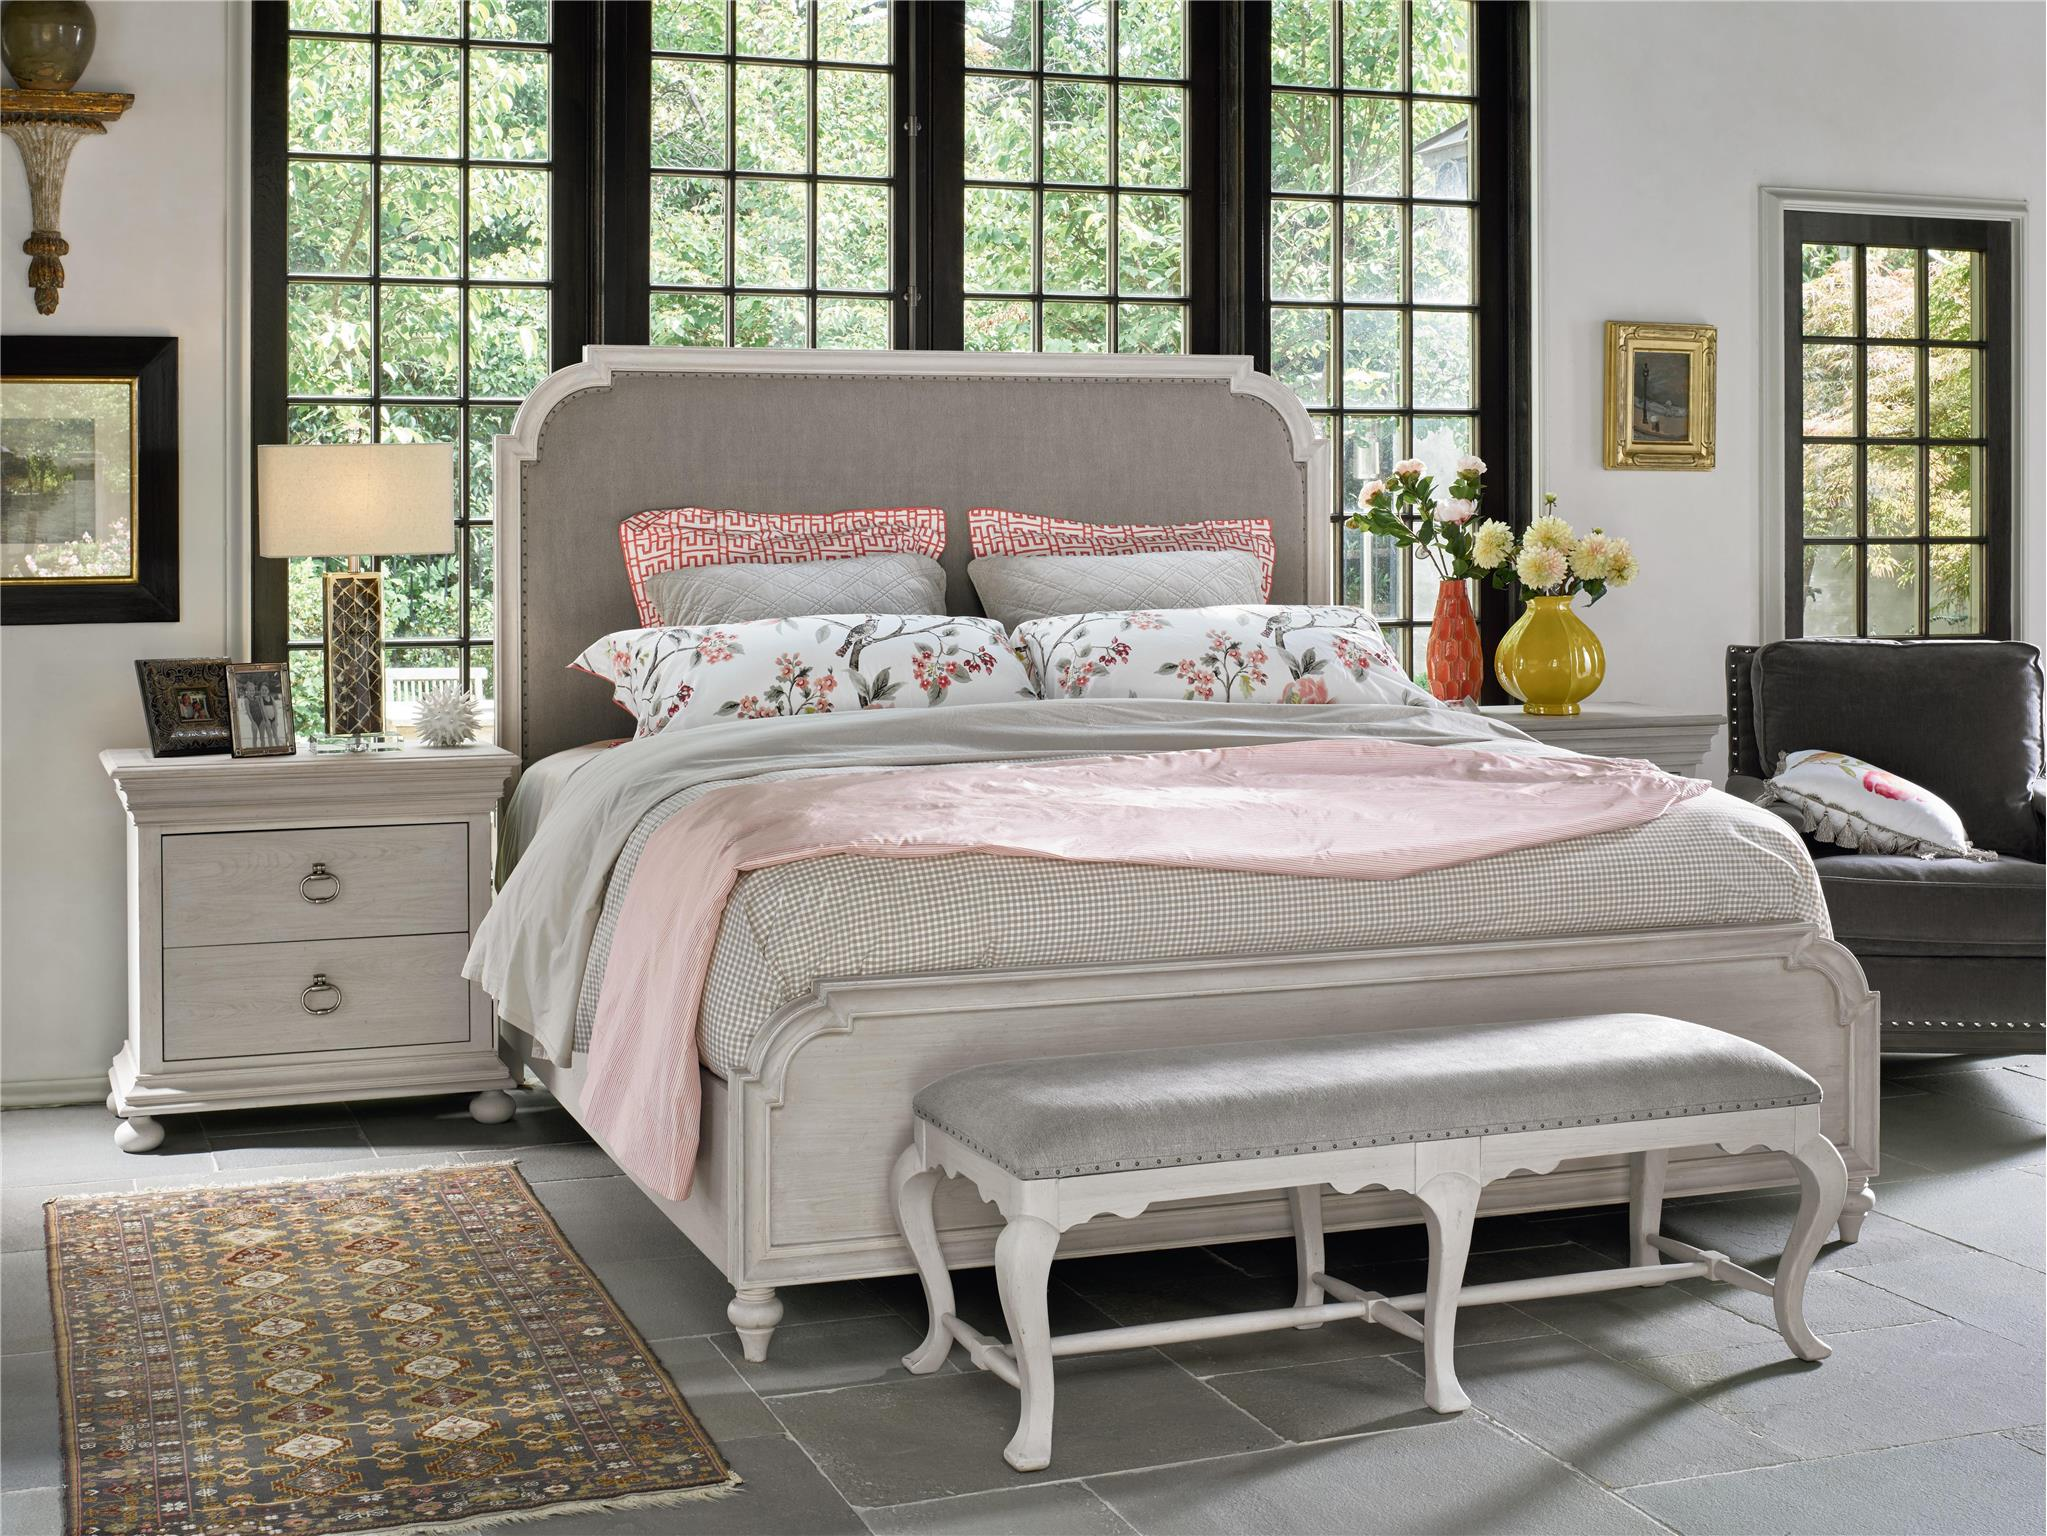 Rooms Furniture Mississauga Master Bedroom Sets Page 2 Cozy Living Furniture